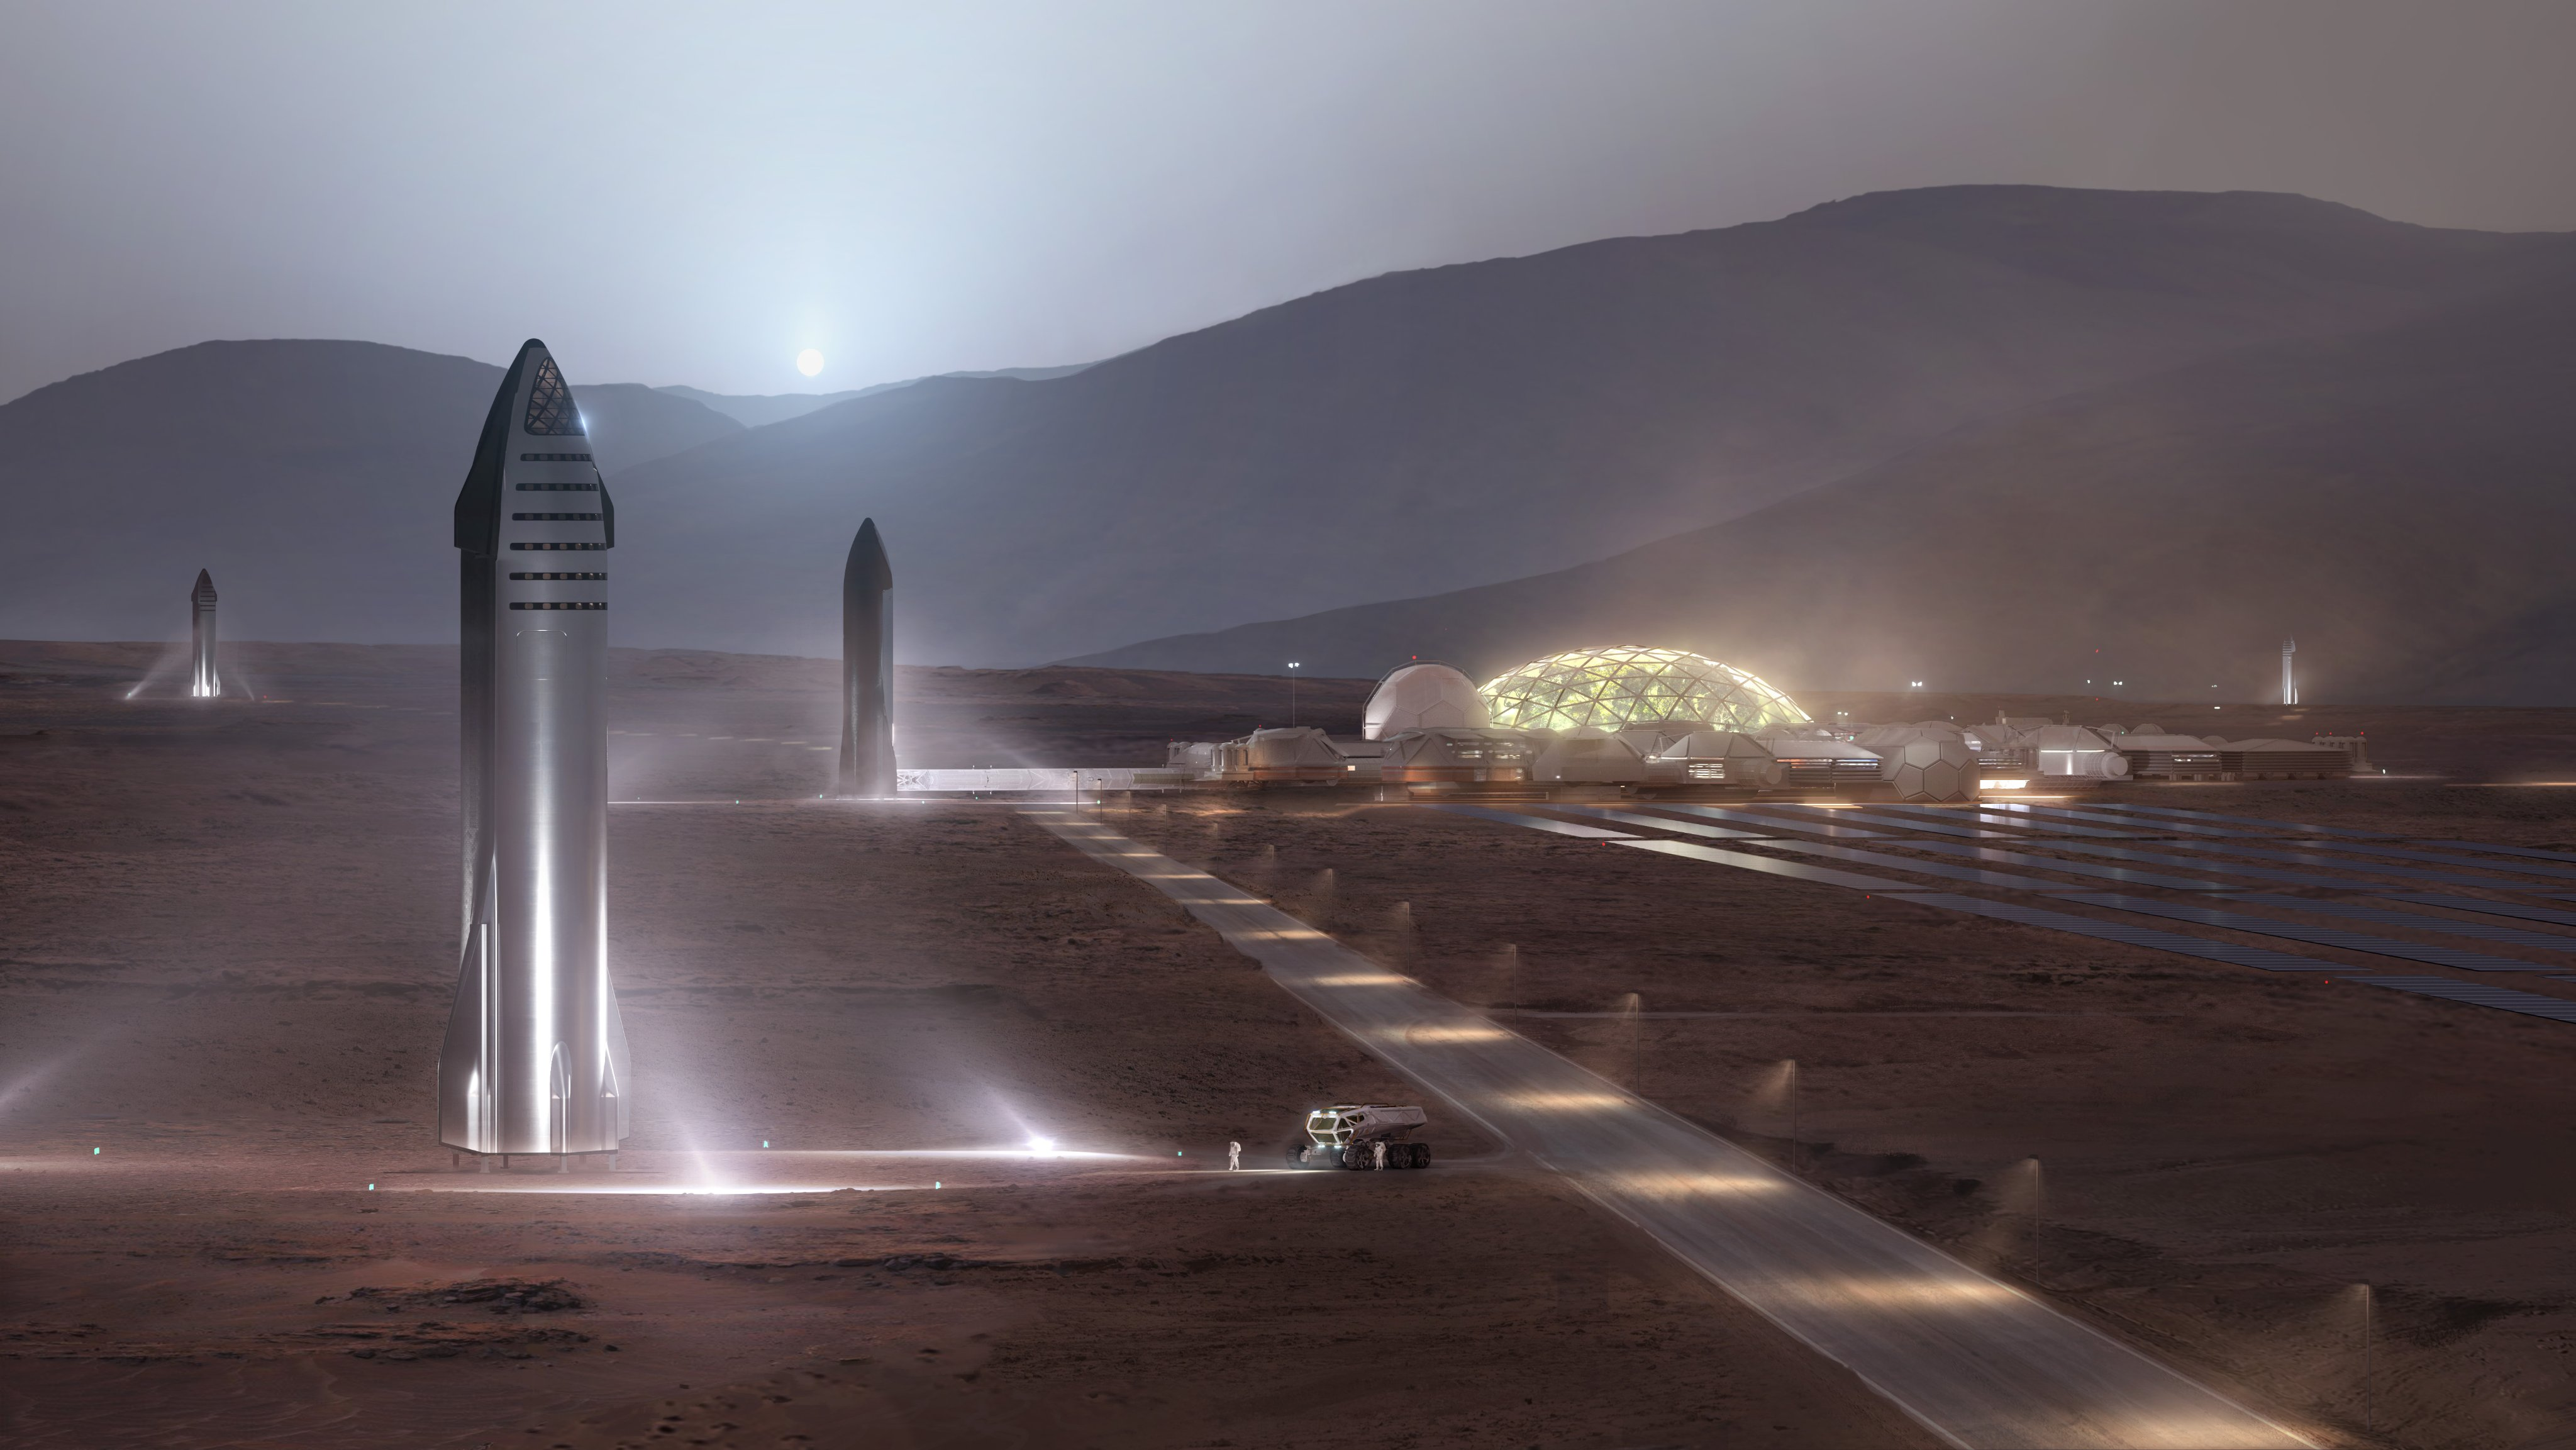 https://www.teslarati.com/wp-content/uploads/2019/09/Starship-2019-Mars-base-render-SpaceX-1.jpg